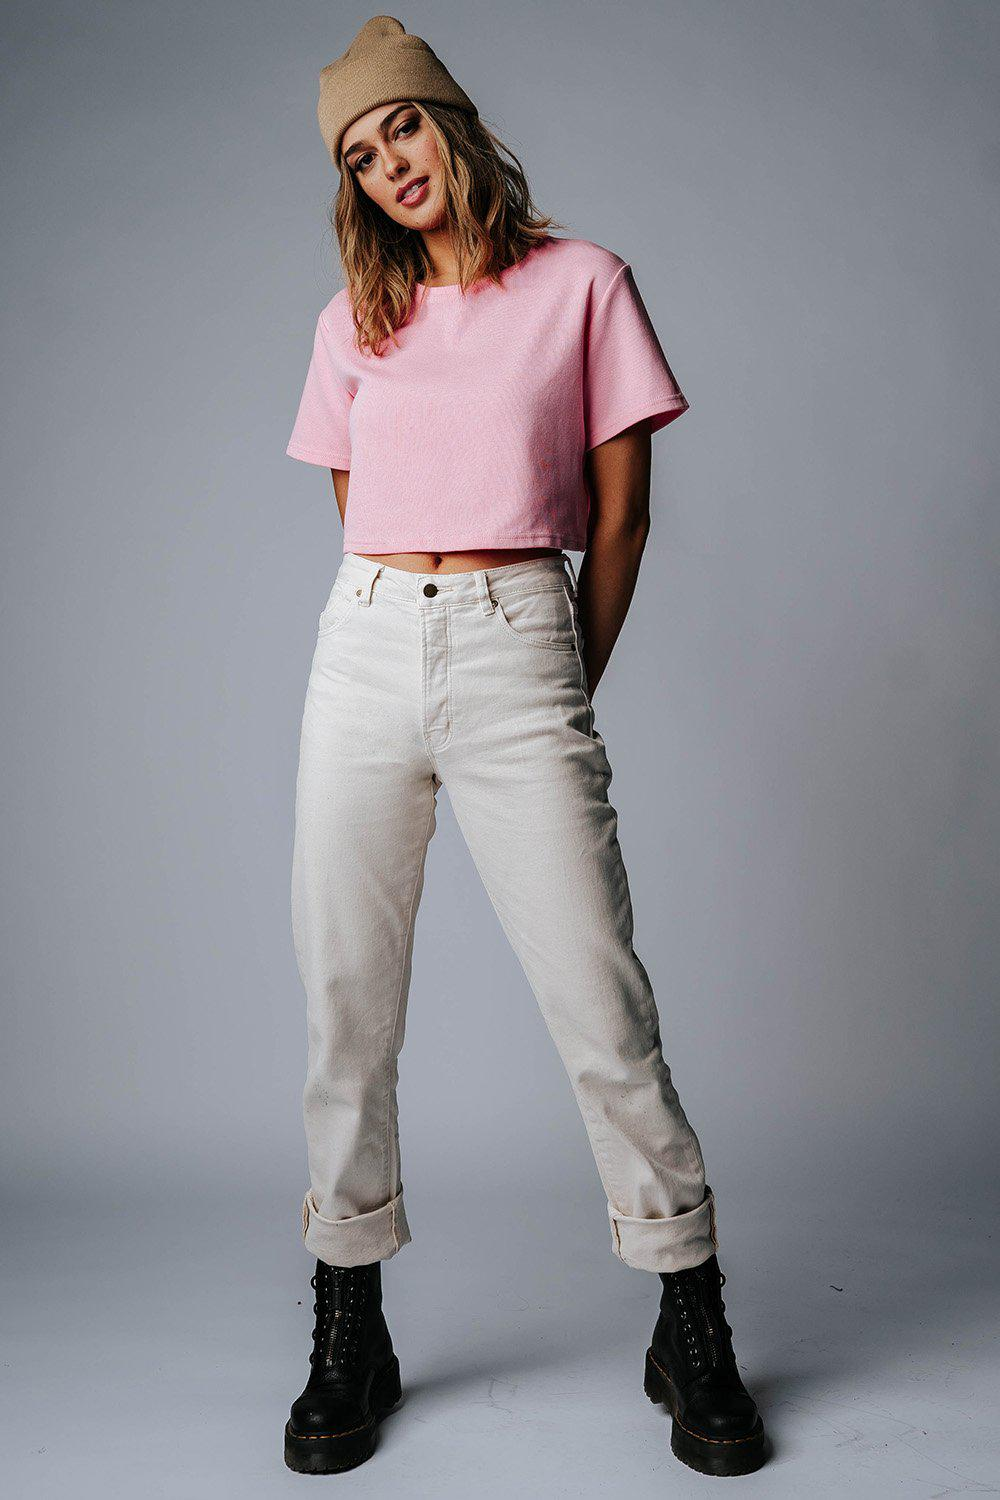 best_seller, Rollas Classic Straight Jeans in Cream - FINAL SALE, Bottom, women's clothing, dresses, skirts, coats, jackets, shoes, boots, tops, tee shirts, jeans, free people, levi's, rollas, jumpsuits, bottoms, tops, sweaters, pullovers, pants, shorts, sweats,.